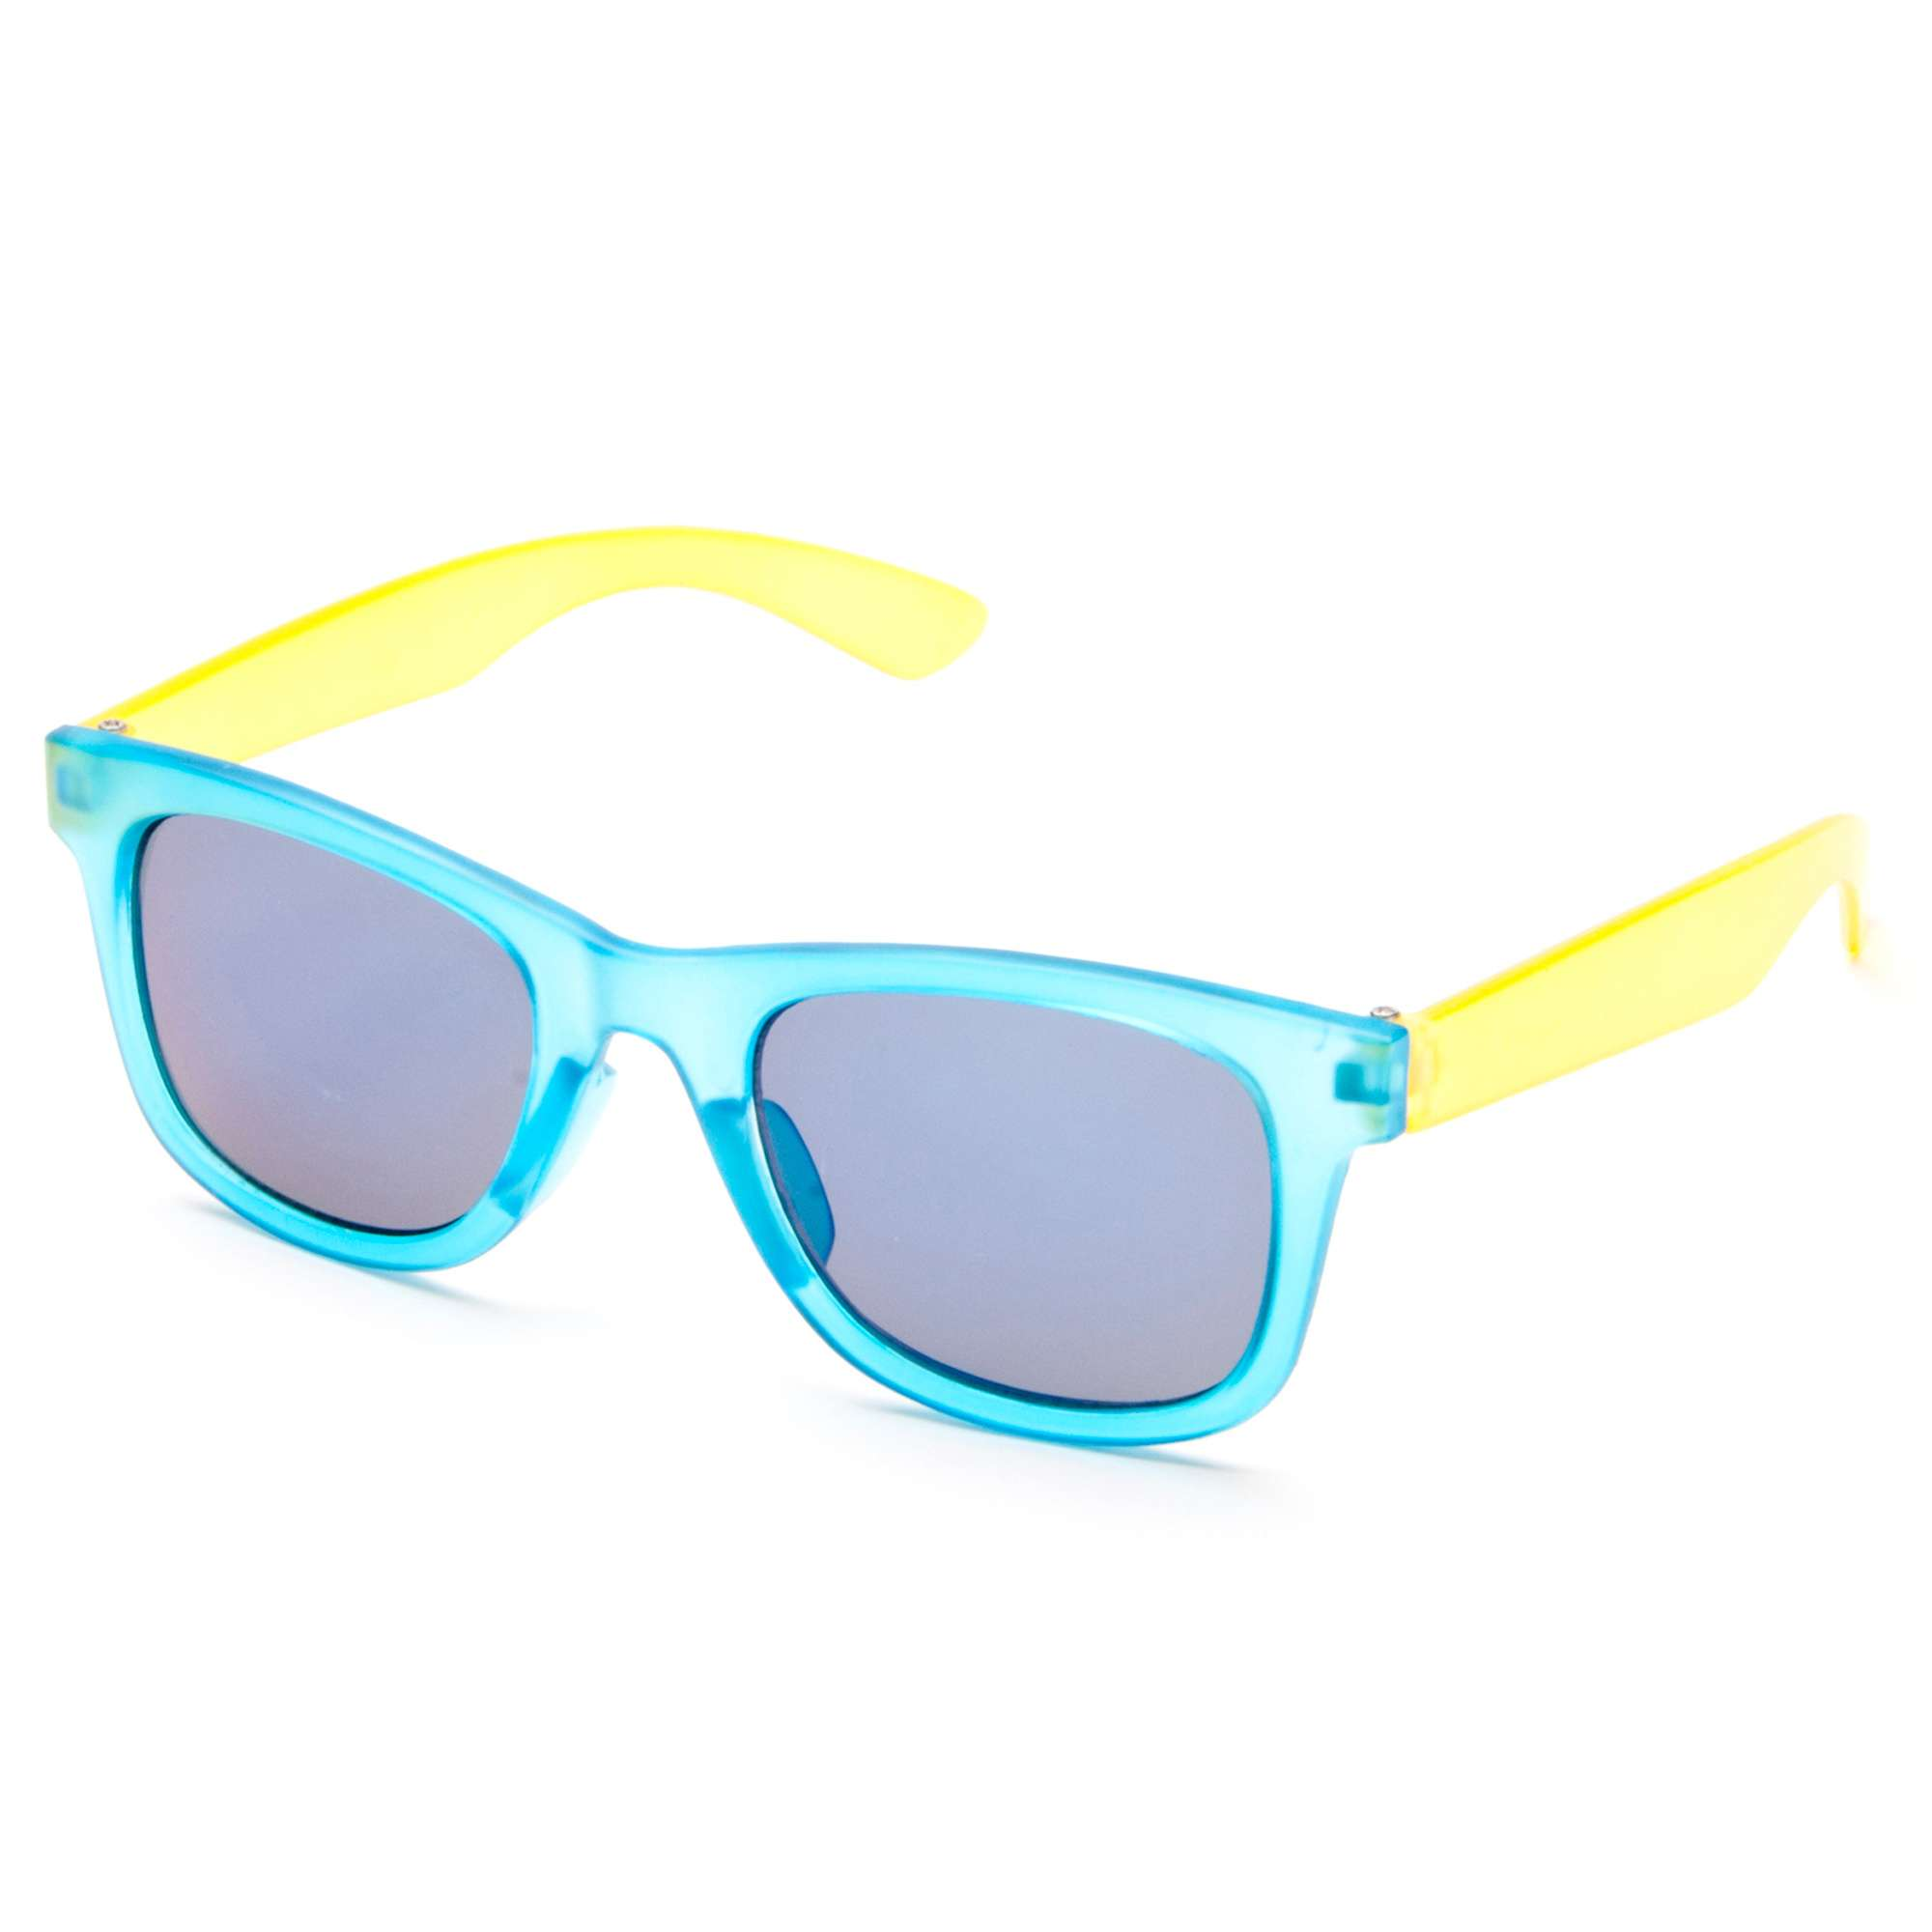 PETER STORM Girls' Frosted Retro Sunglasses